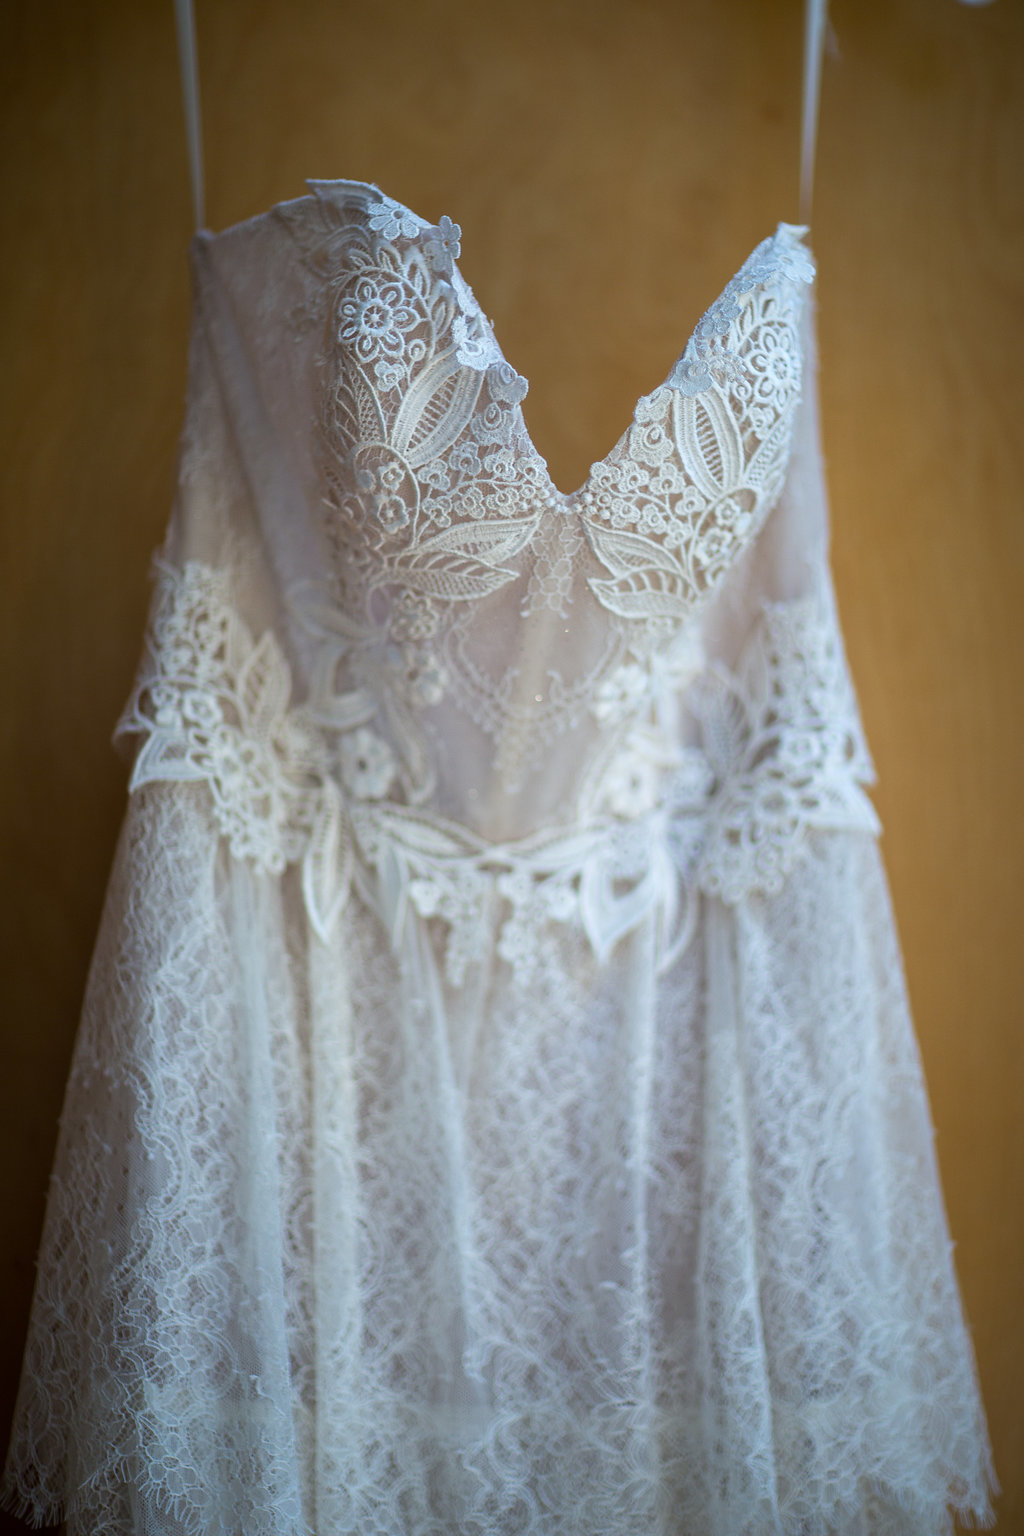 Monica_Relyea_Events_Dawn_Honsky_Photography_Meg_wedding_dress